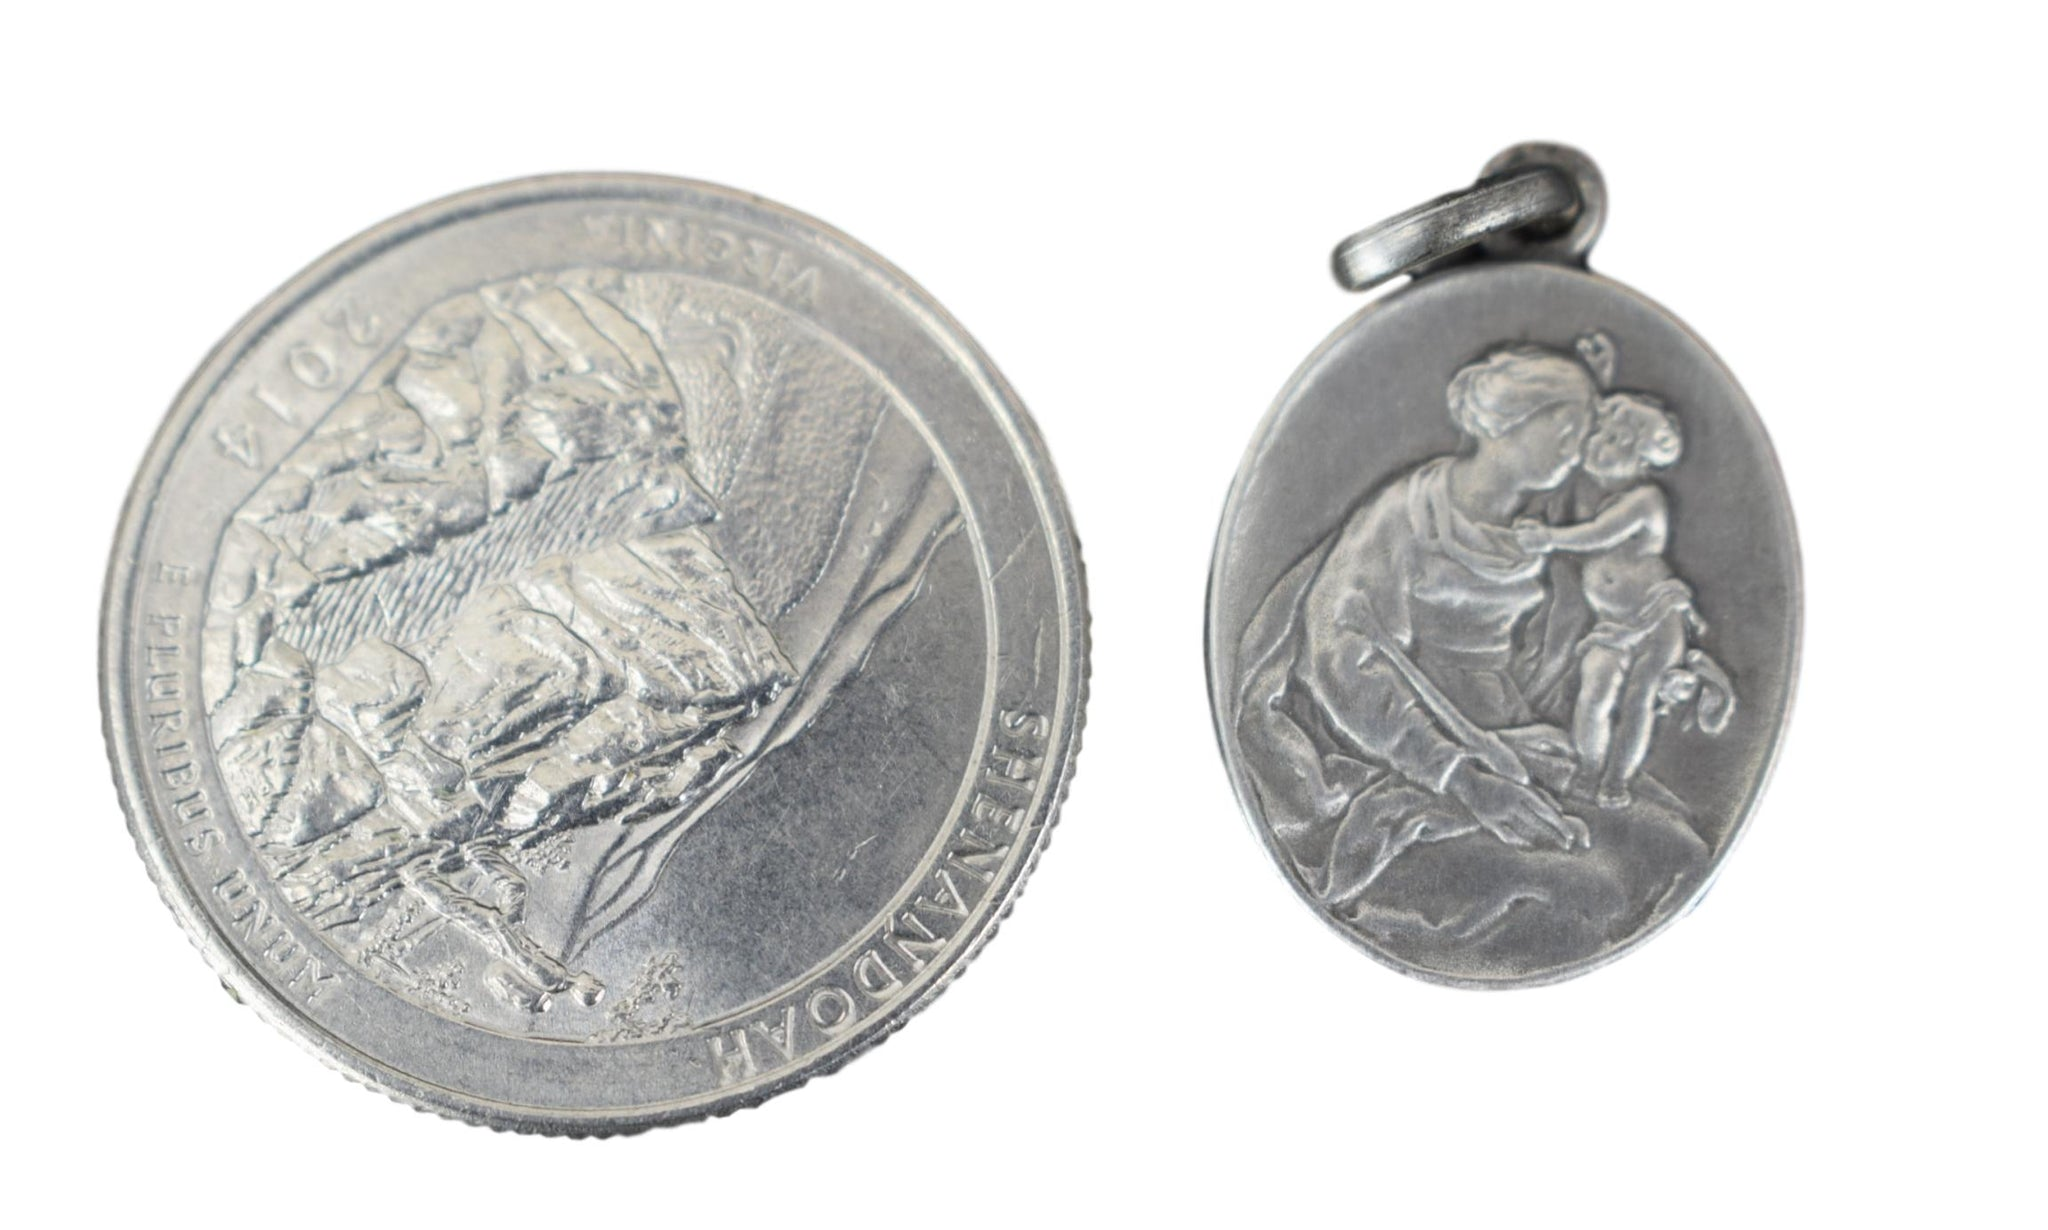 Madonna Child Silver Medal - Charmantiques